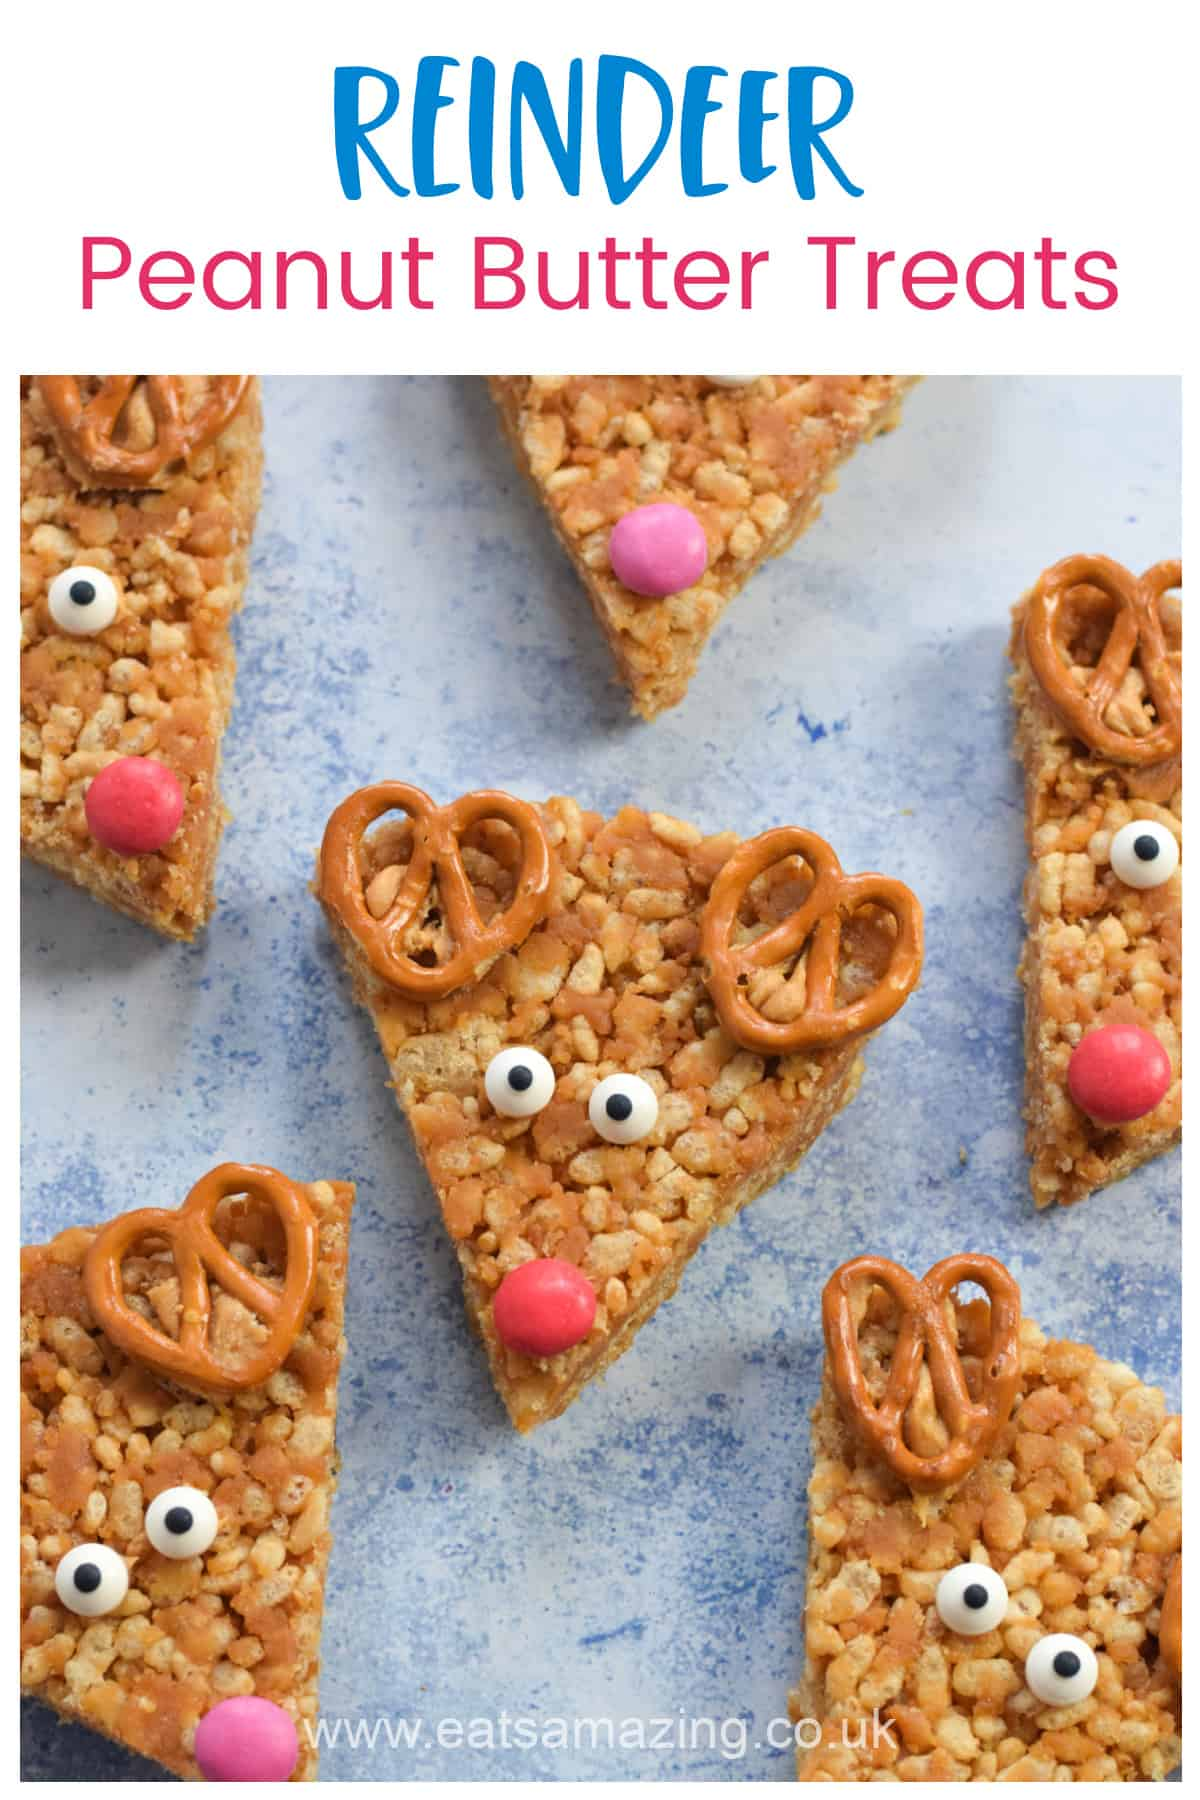 Cute and easy reindeer peanut butter rice crispy treats recipe - fun and healthy Christmas food for kids